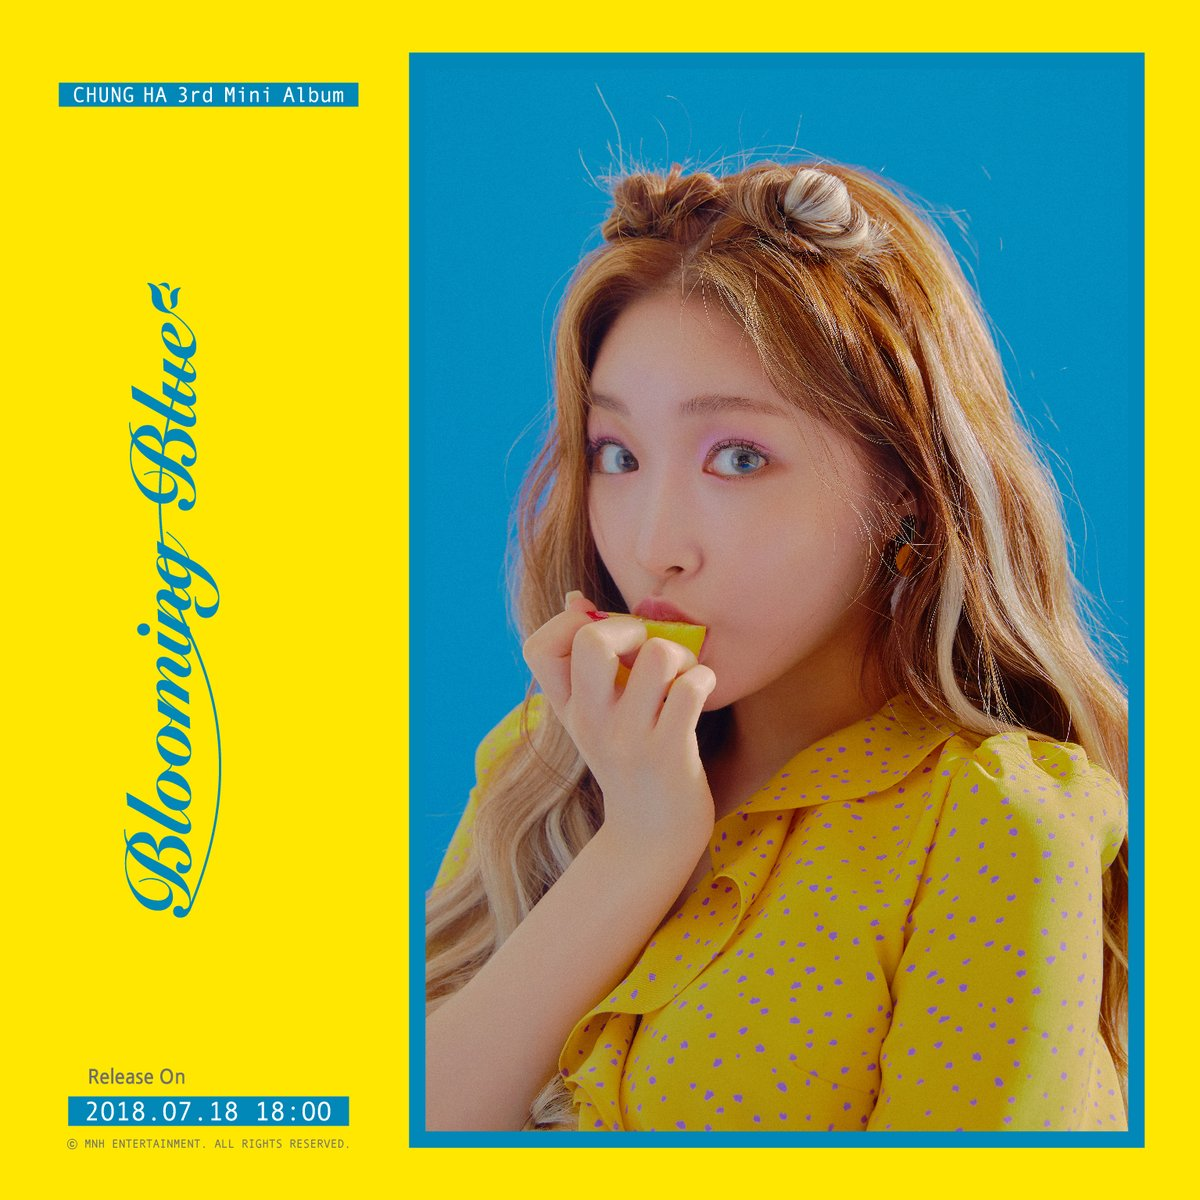 Chungha  Ec B Ad Ed   Is A Korean Solo Singer Who Became Well Known After Finishing On Rank  On The Survival Show Produce  And Became Part Of The Girl Group